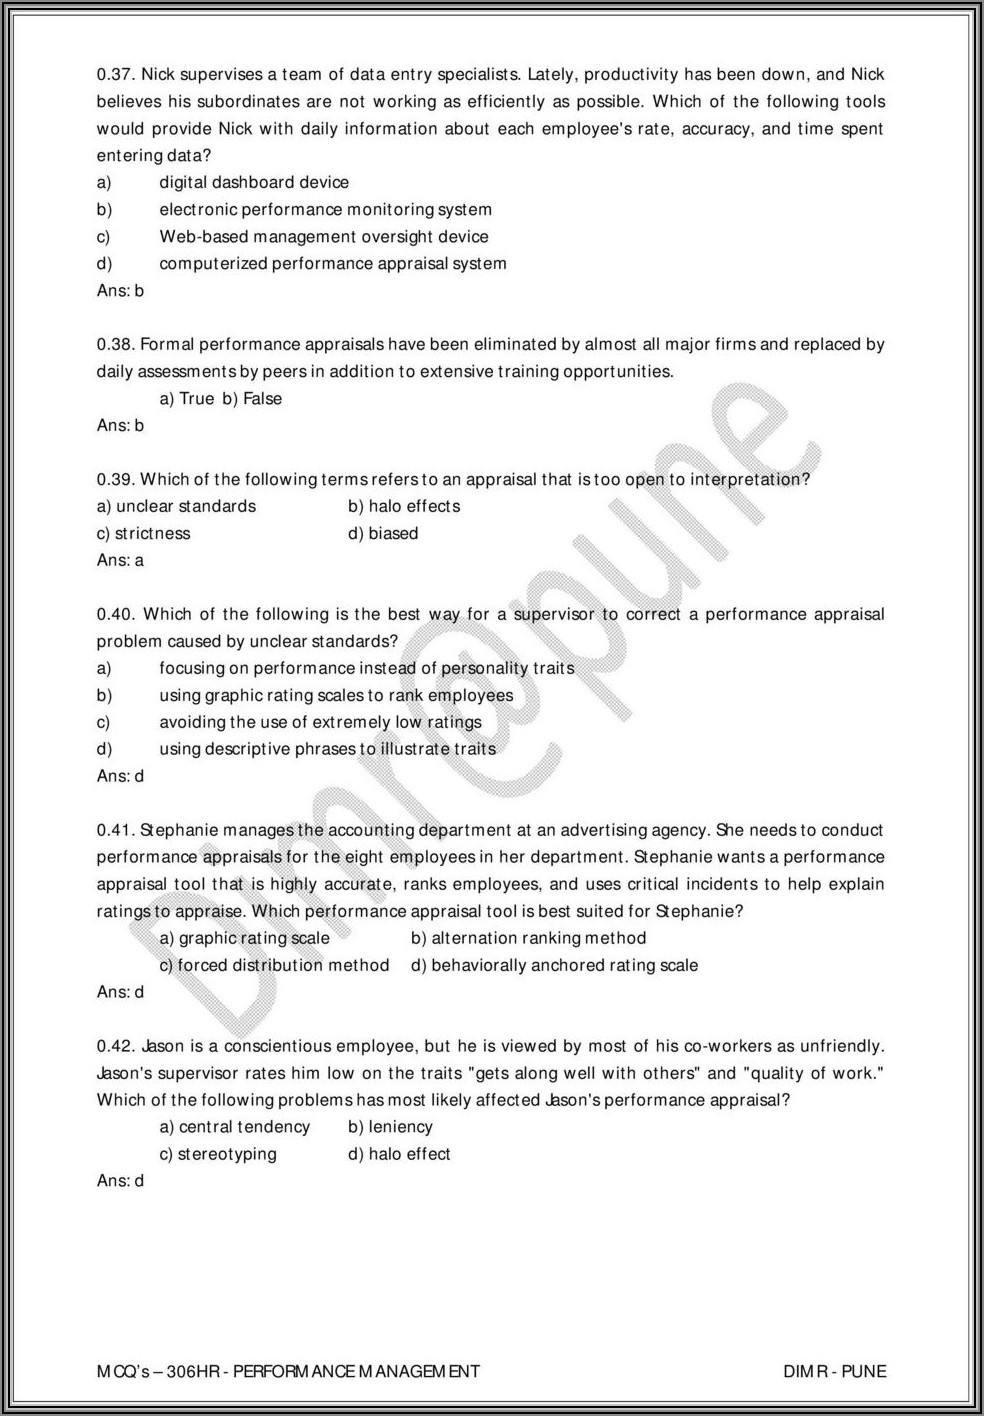 Annual Performance Appraisal Form Answers